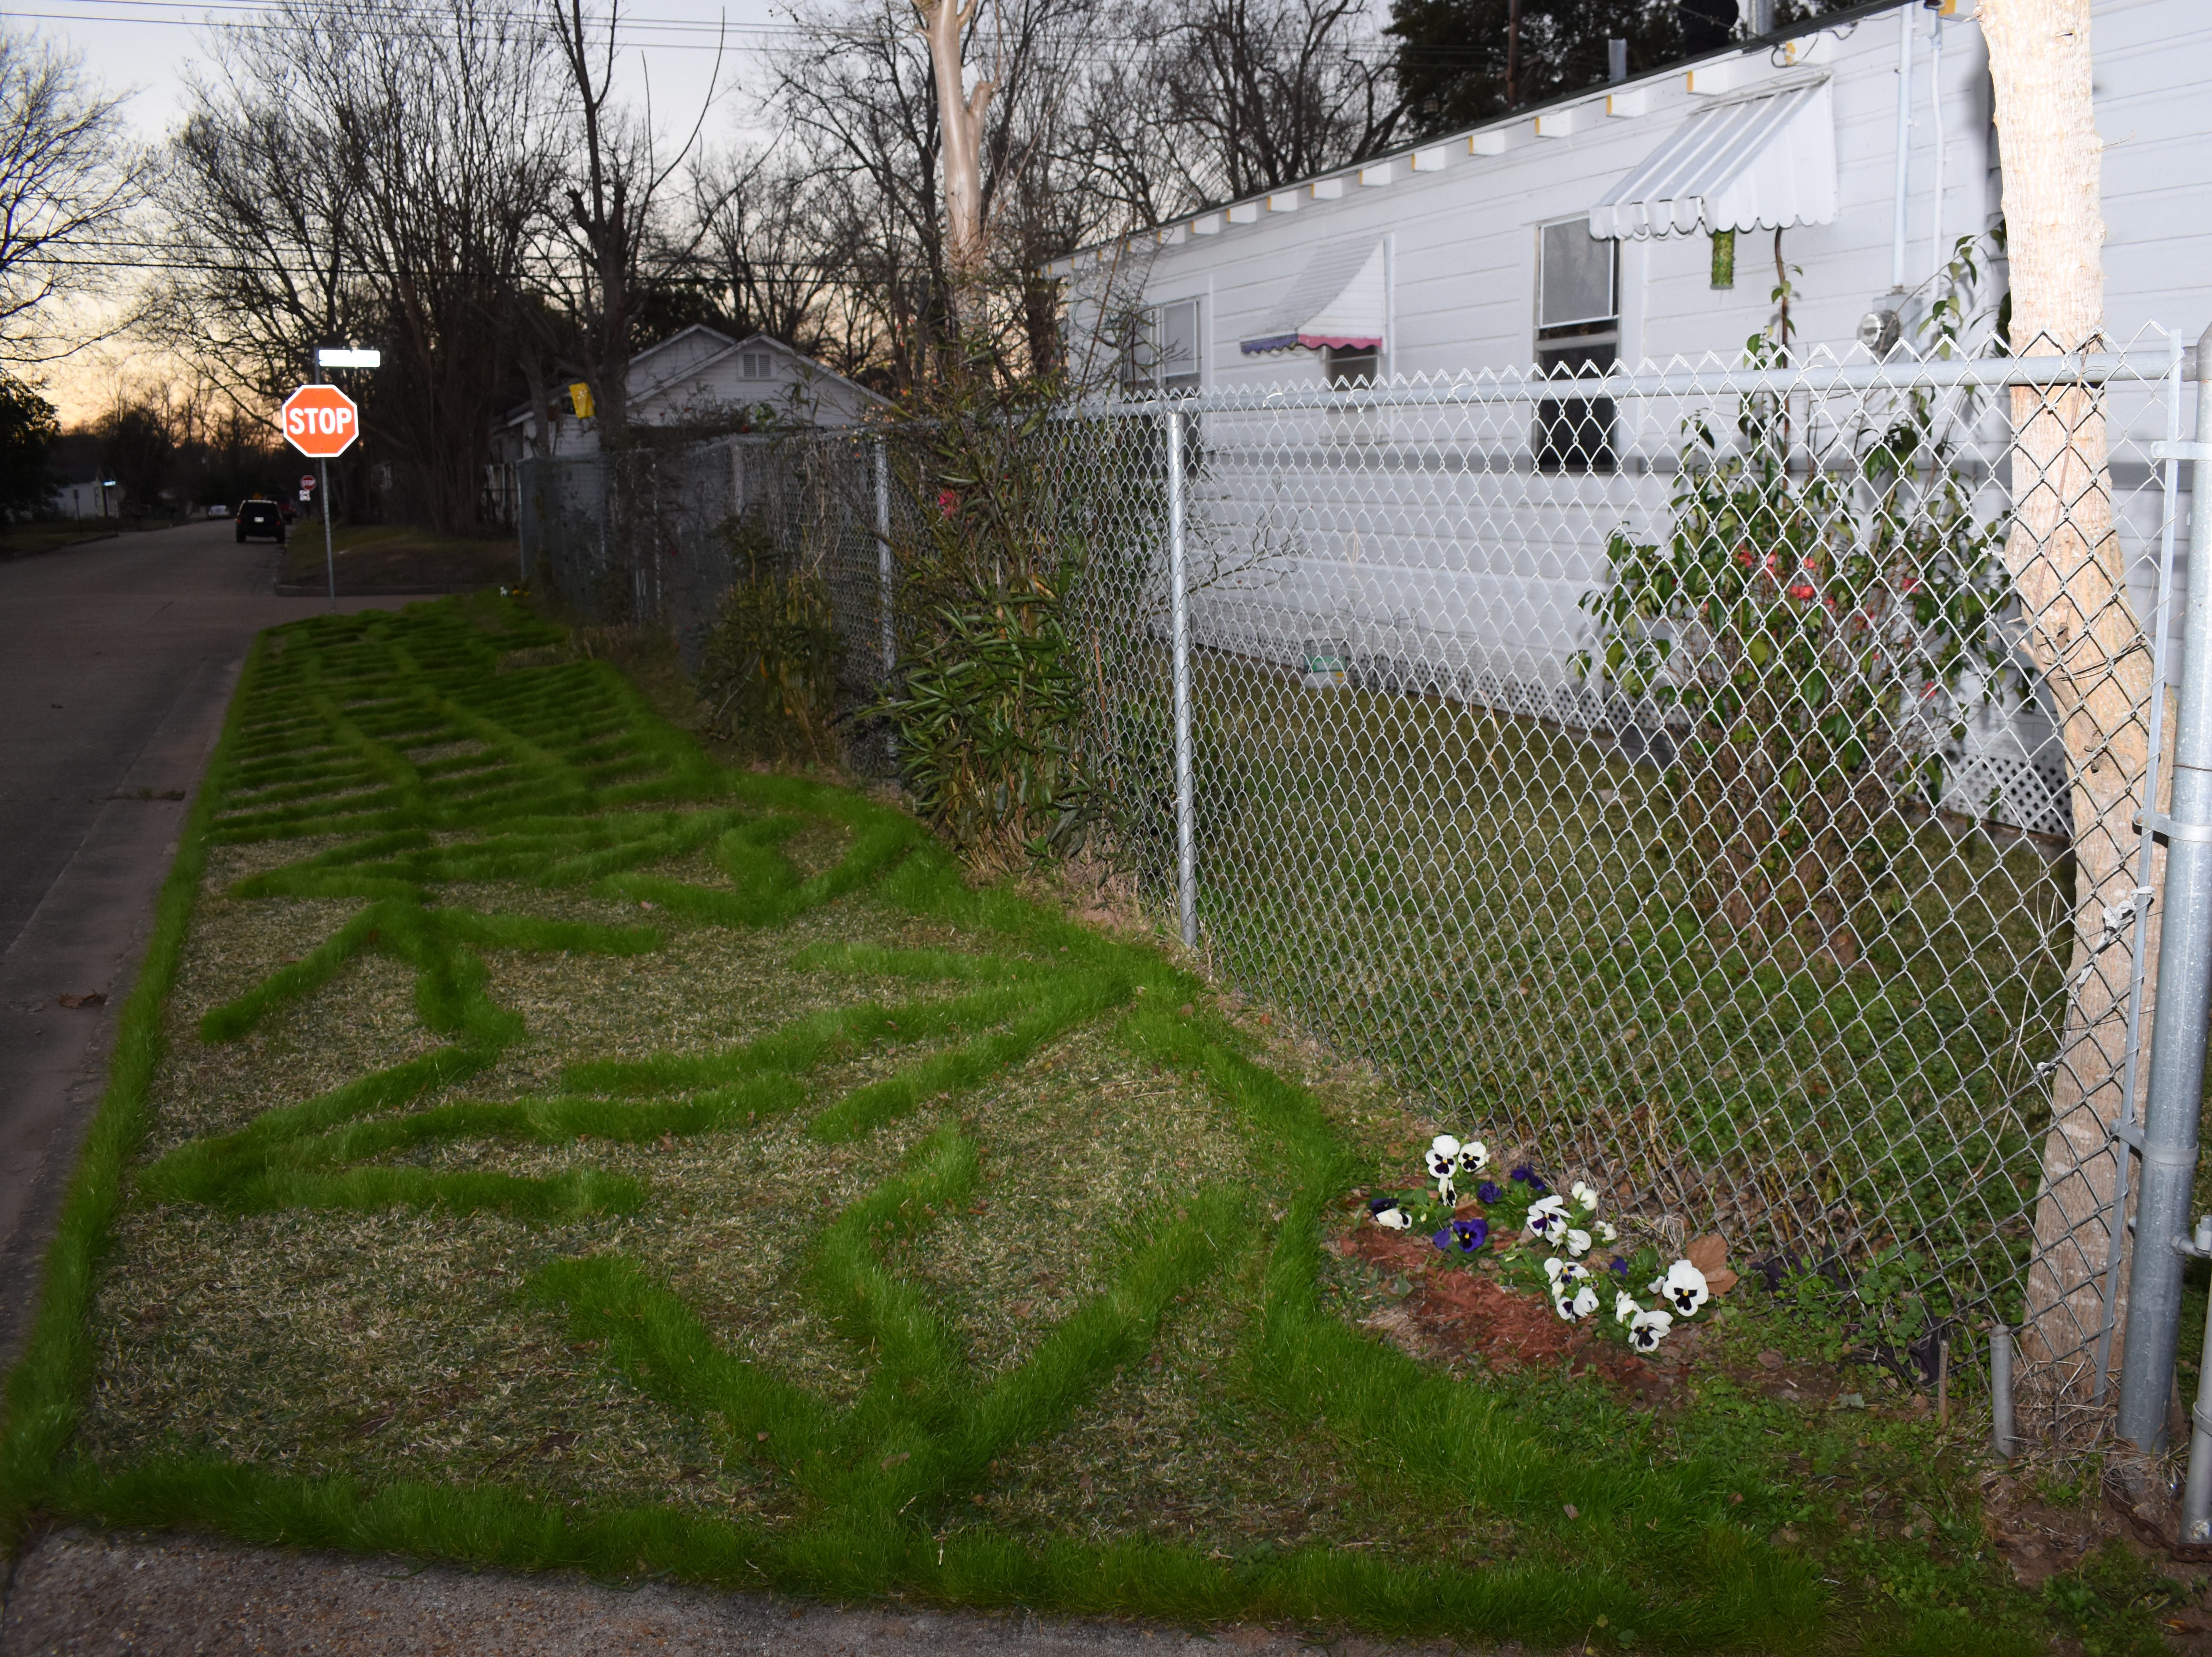 "For over 20 years, Arthur Brown has used a lawn trimmer to create designs in his yard located at University and 5th Streets in Alexandria. Brown creates a new design for the beginning of each new year. For 2019, he trimmed out the word ""Red Hots"" along with big dots because as a child, he loved to eat the candy. Neighbors and passersby like his designs and look forward each  to see what new patterns will emerge in his yard. He uses ryegrass because it is a winter grass that will last until May. Brown plans the designs a year in advance and is already working on 2020. 